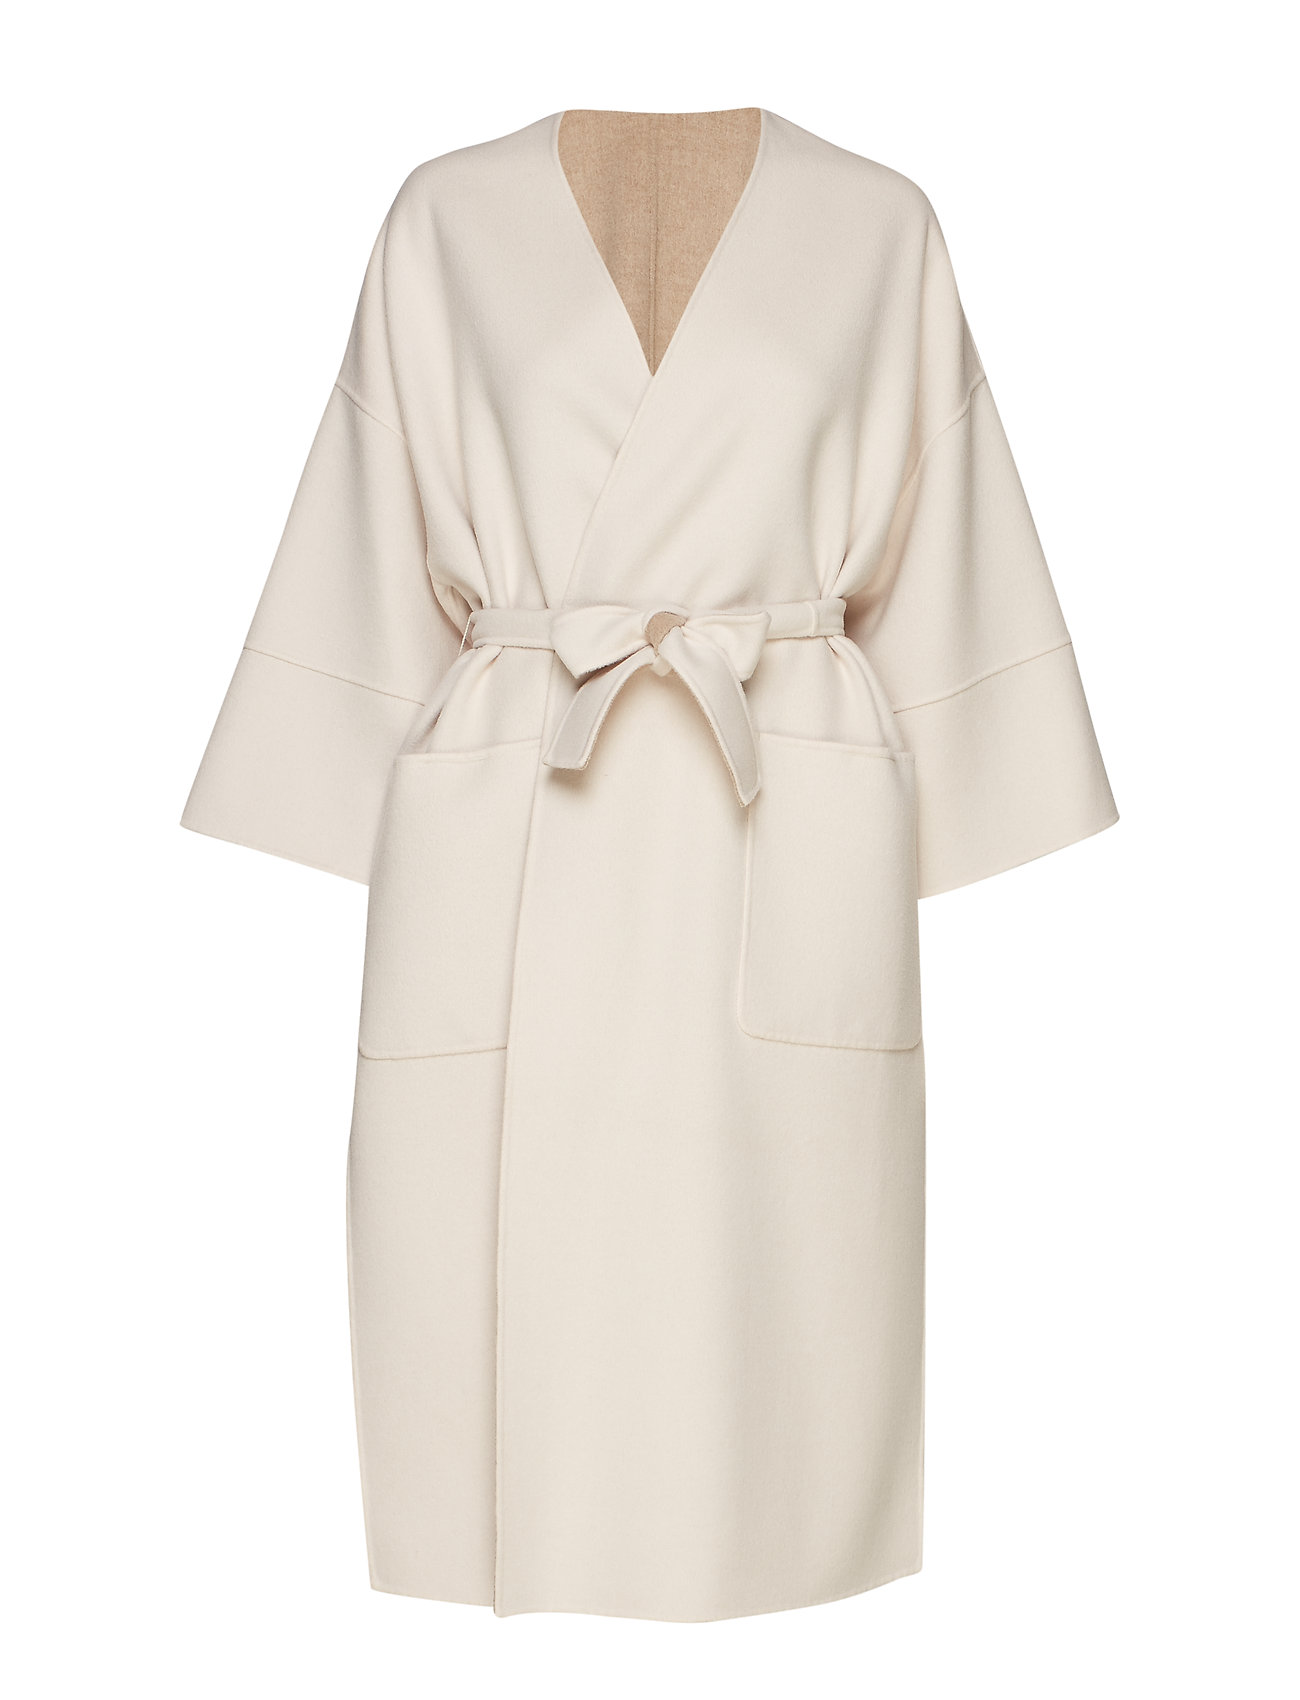 Weekend Max Mara PEGLI - WHITE